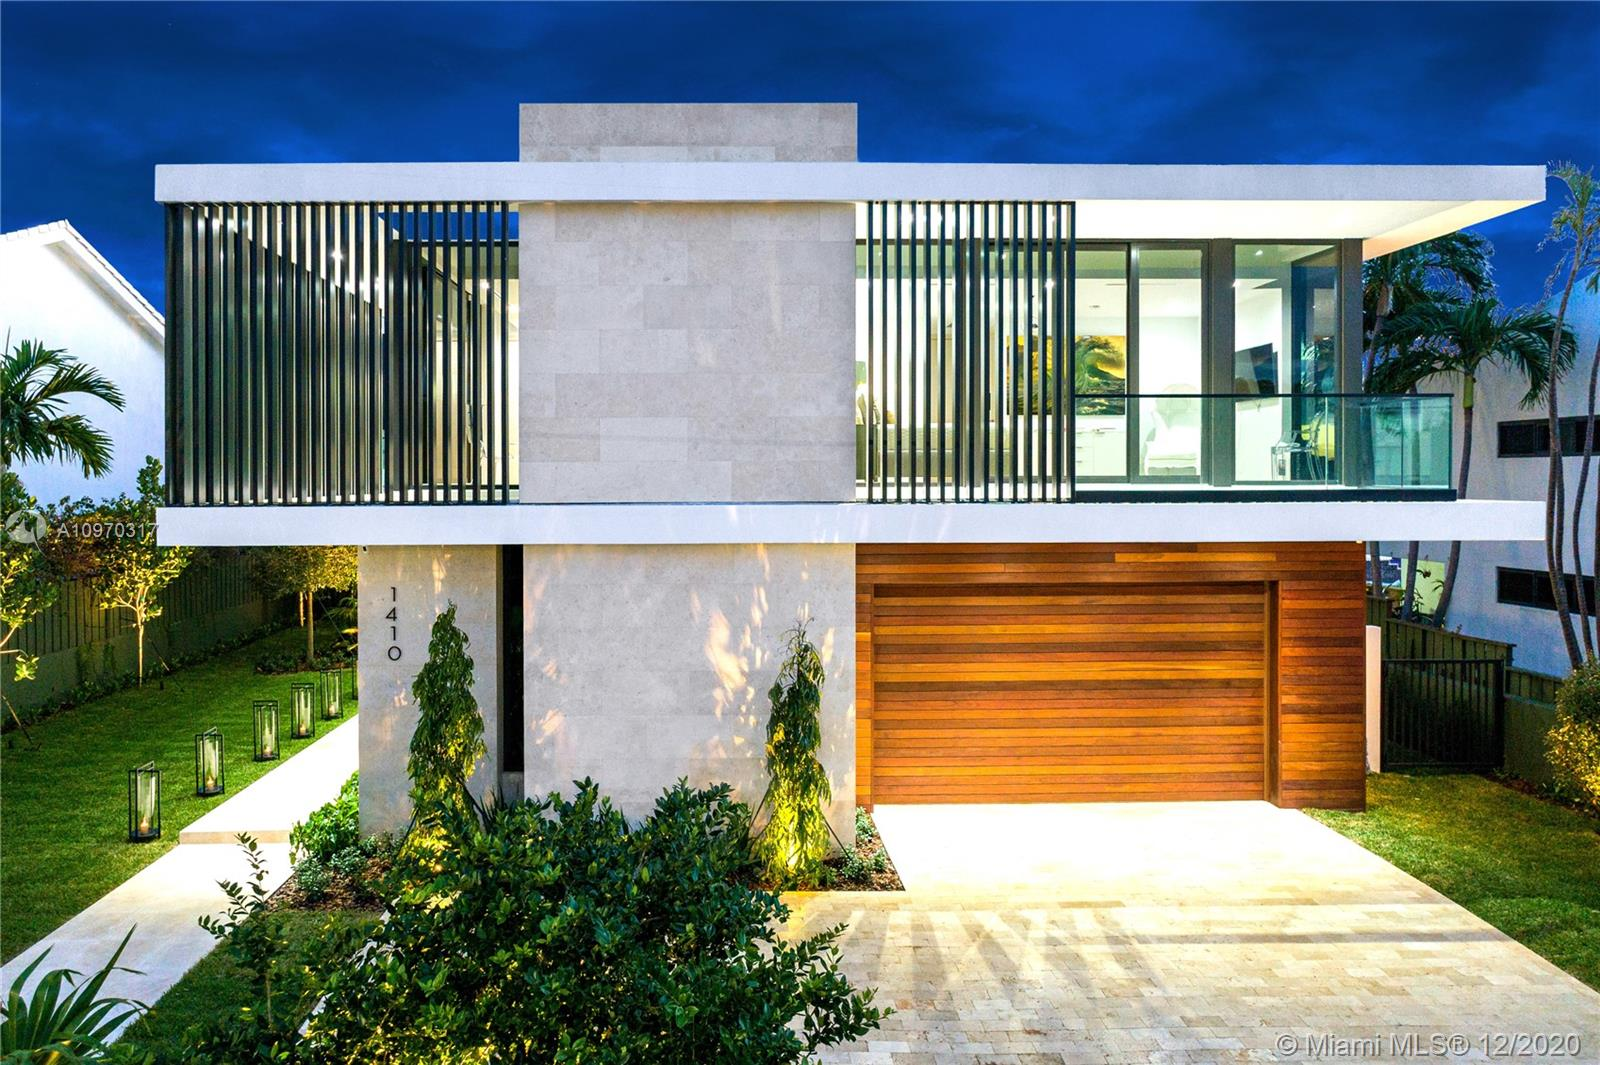 Welcome to Villa Nova: a Miami Beach waterfront masterpiece built with the utmost quality of construction and finishes. The 6 bedroom, 7 bath home sits on a 11,250 sq ft lot with 75 ft of prime water frontage and unparalleled views. Its tropical modern architecture is complemented by a facade extensively clad in limestone, aluminum louvers and garage in ipe wood. All exterior flooring is paved in travertine. Elegant interior boasts white oak floors, a Boffi XILA kitchen in walnut and bathrooms, all finished in limestone, also by Boffi. A concrete floating micro-cement coated staircase and Venetian plastered walls make this Villa a one-of-a-kind piece of art. Carefully created to promote healthy living, from the heated salt water pool to the home gym. Luxury and smart technology throughout.